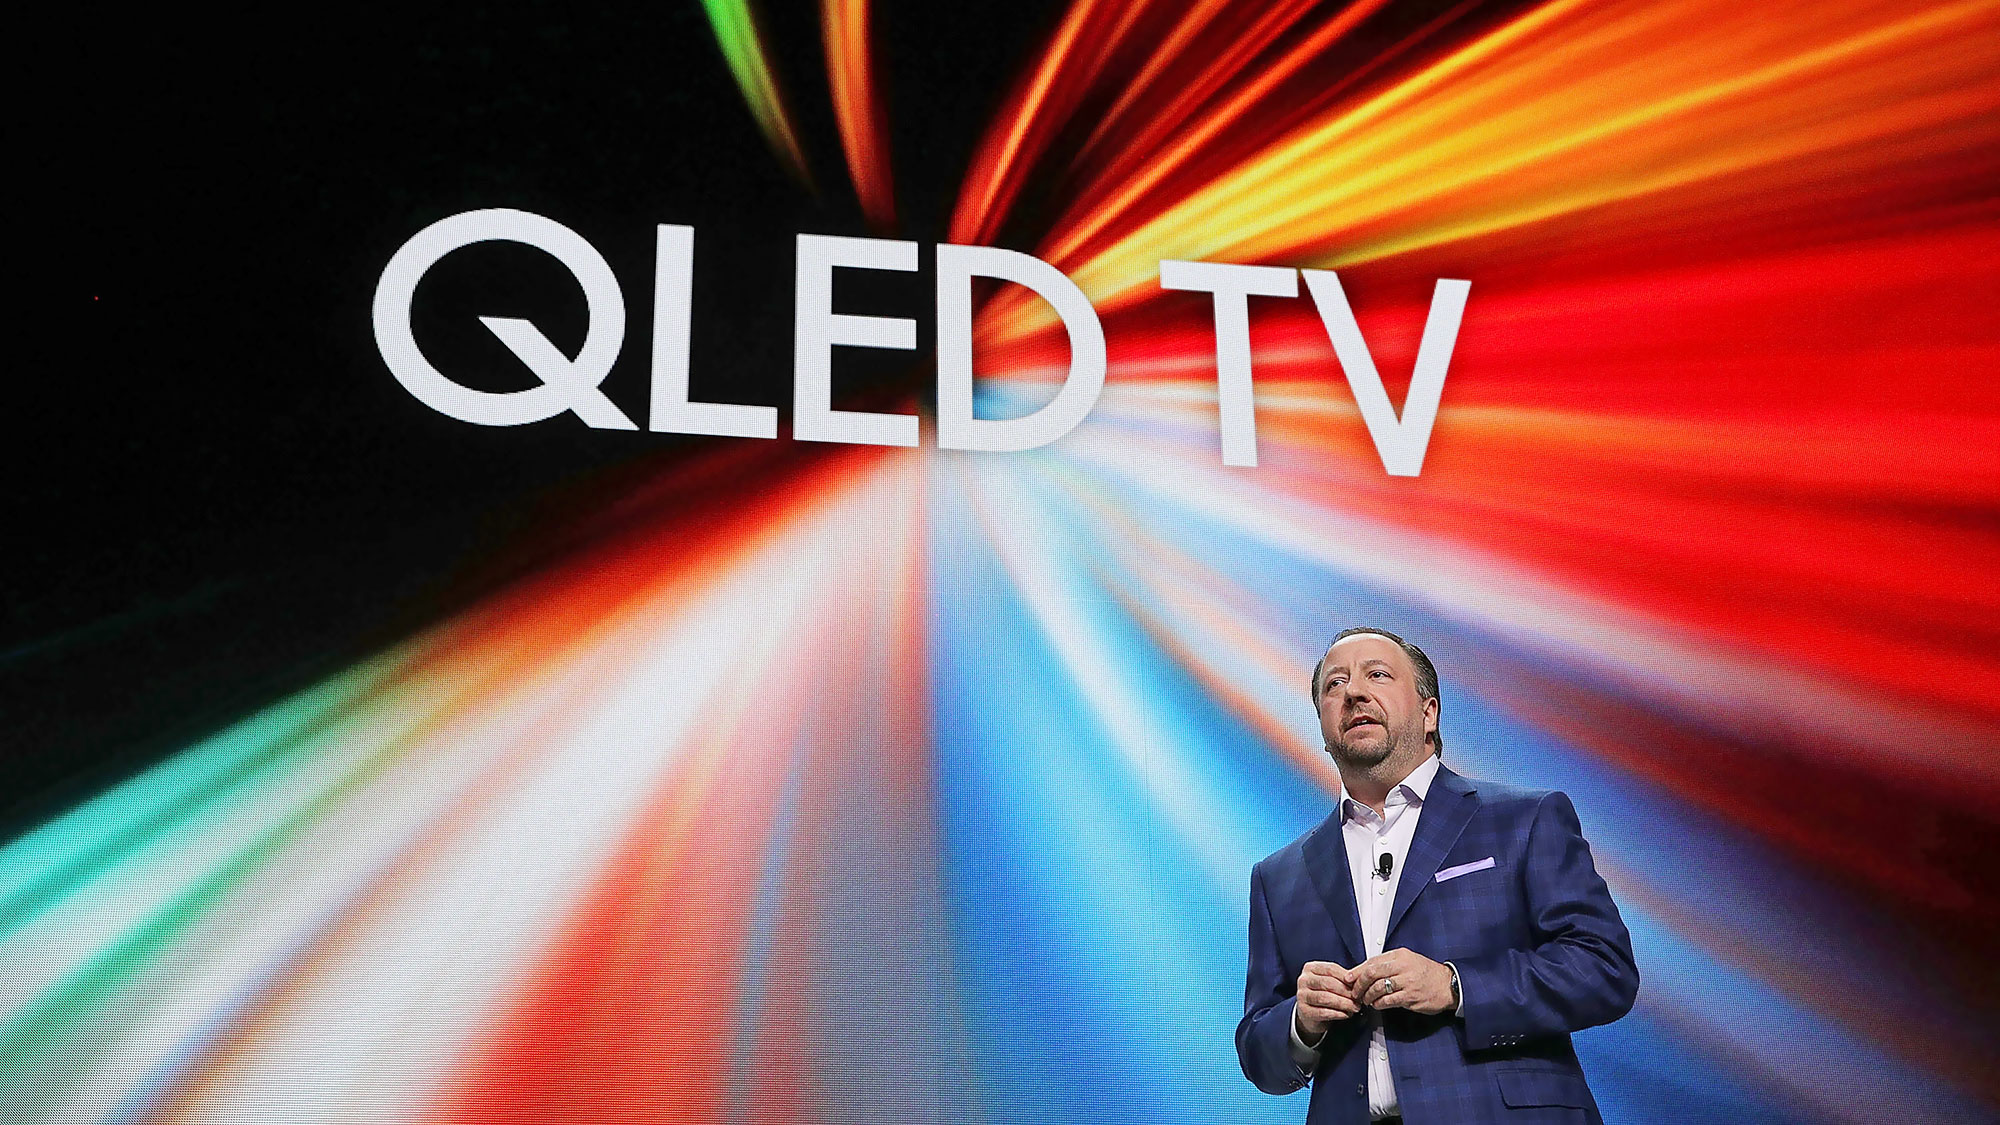 New QLED TVs for 2019: Samsung, Vizio, TCL, OnePlus and More